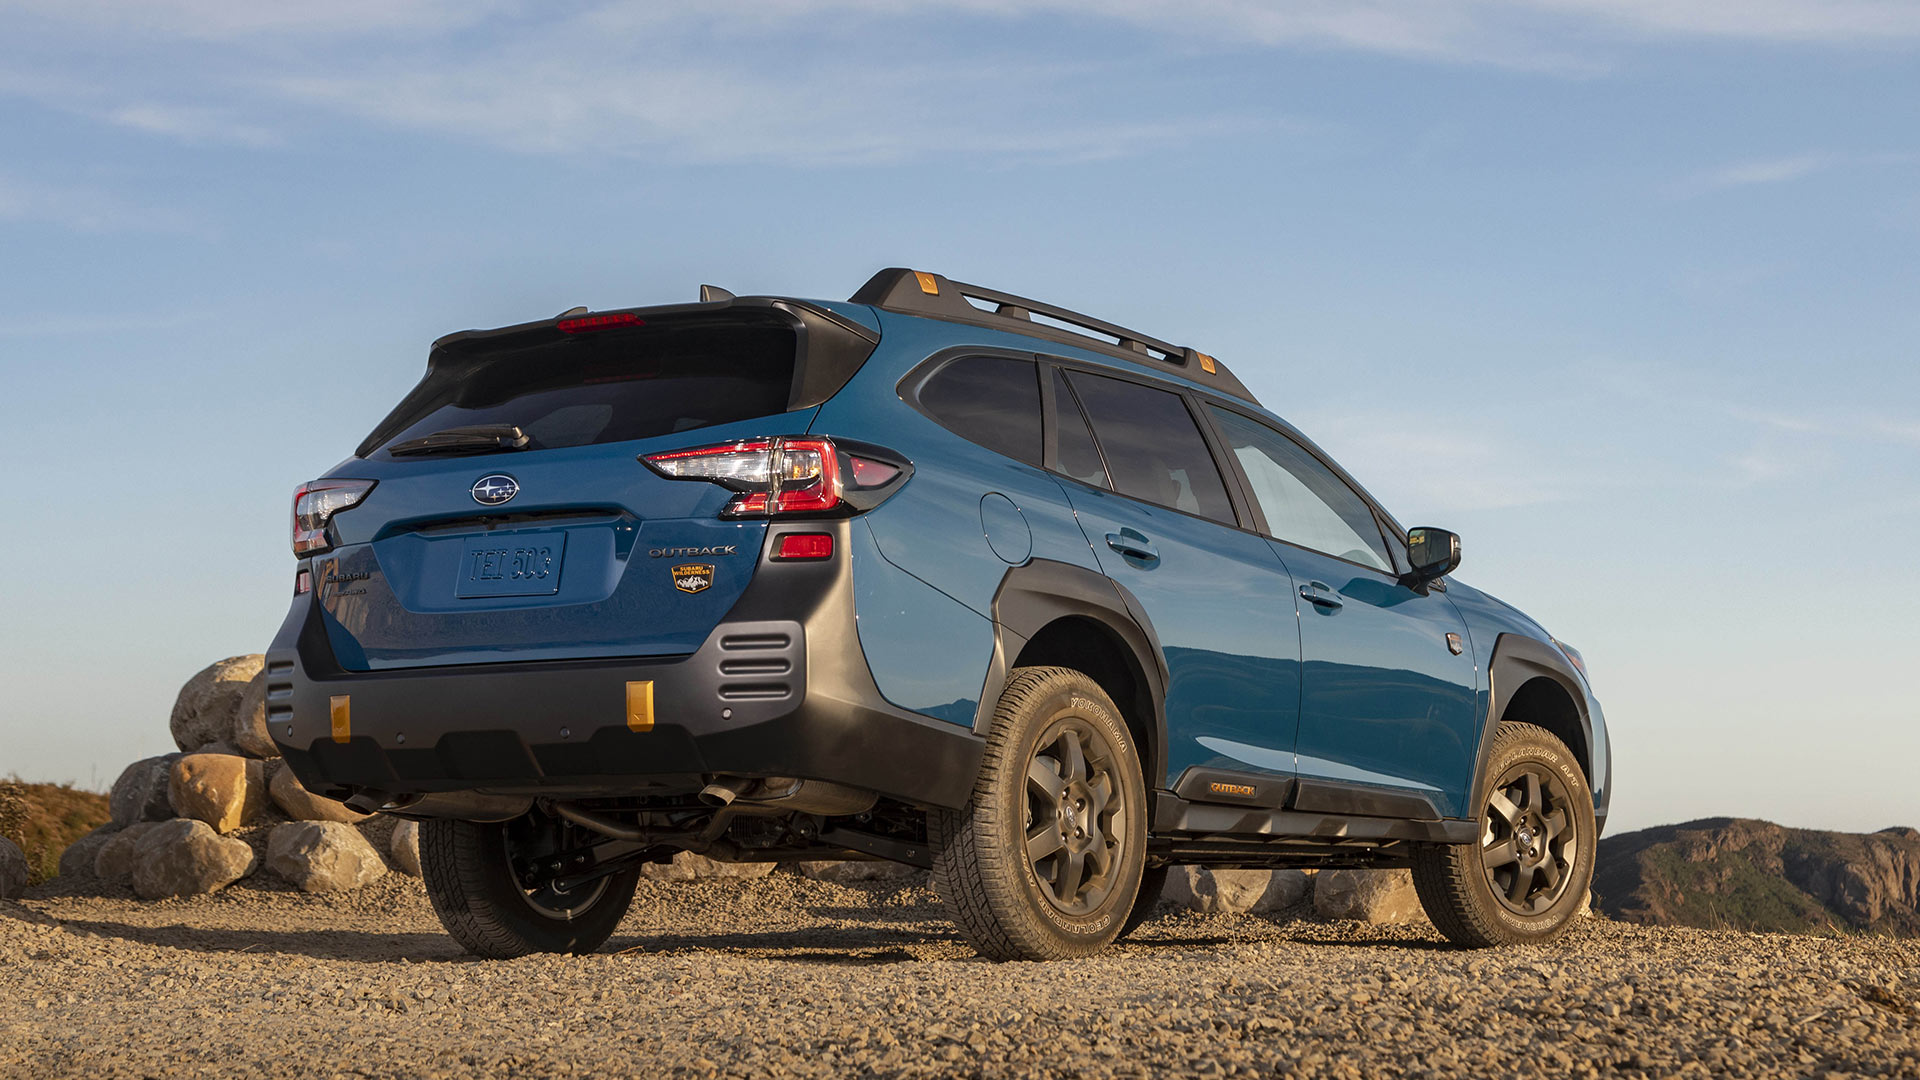 The Subaru Outback Wilderness Angled Rear Vew